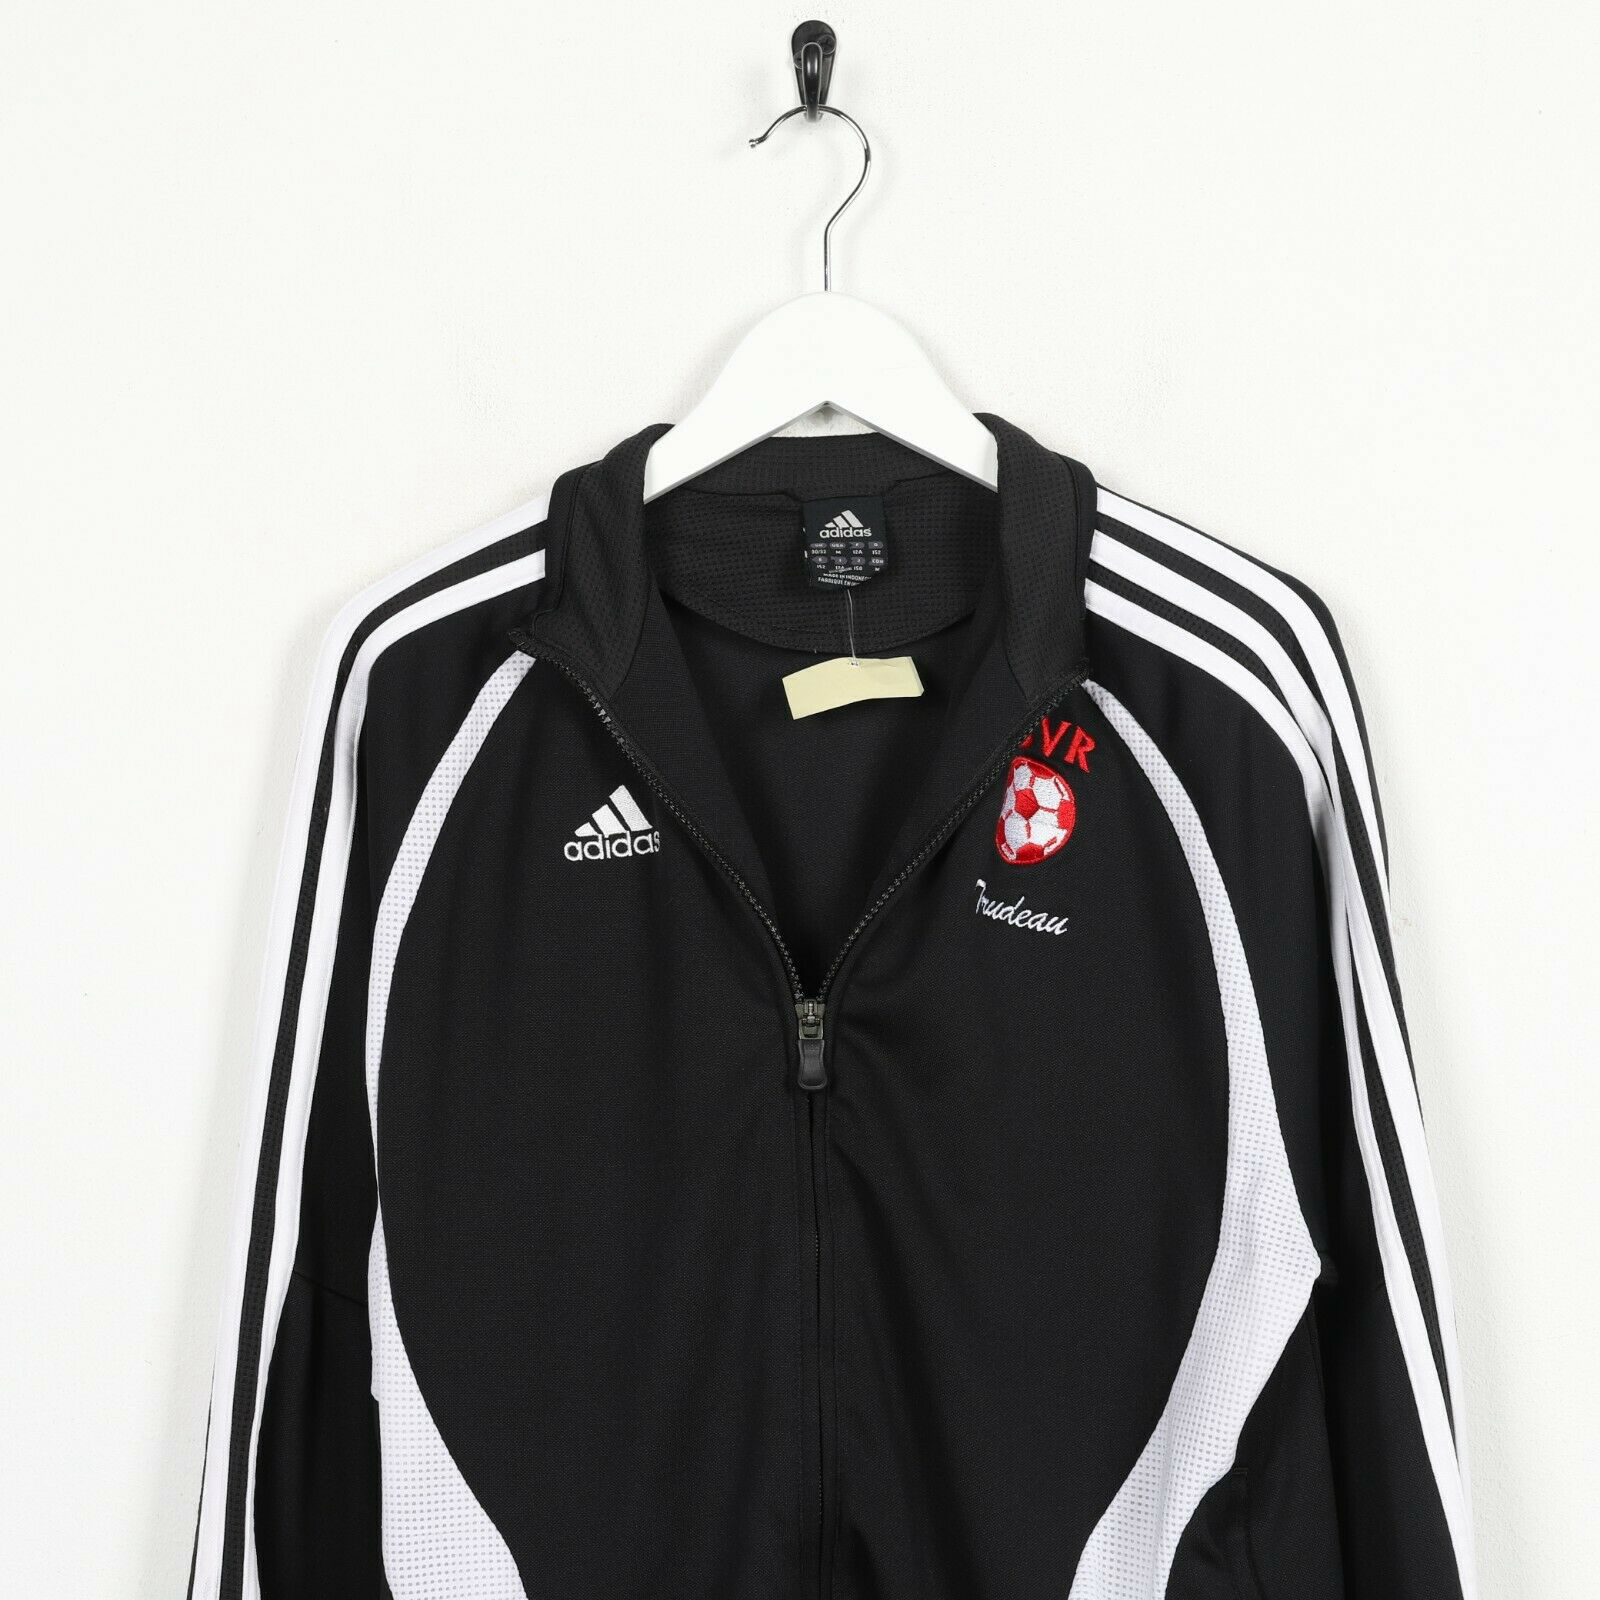 Vintage Kids ADIDAS Tracksuit Top Jacket Black Medium M